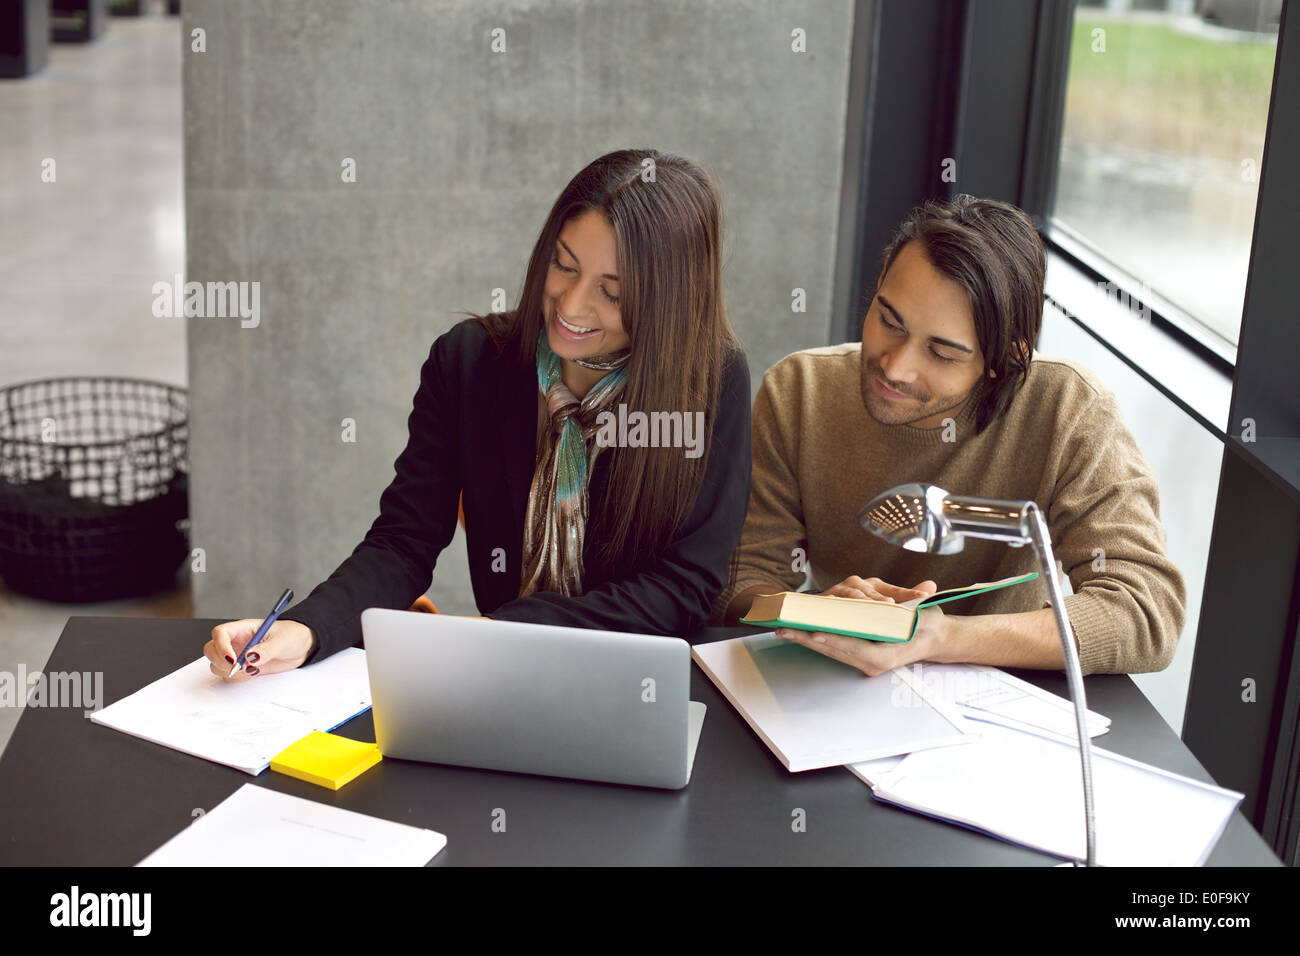 Young students taking notes from reference books for study. Young man and woman sitting at table with books and laptop. - Stock Image